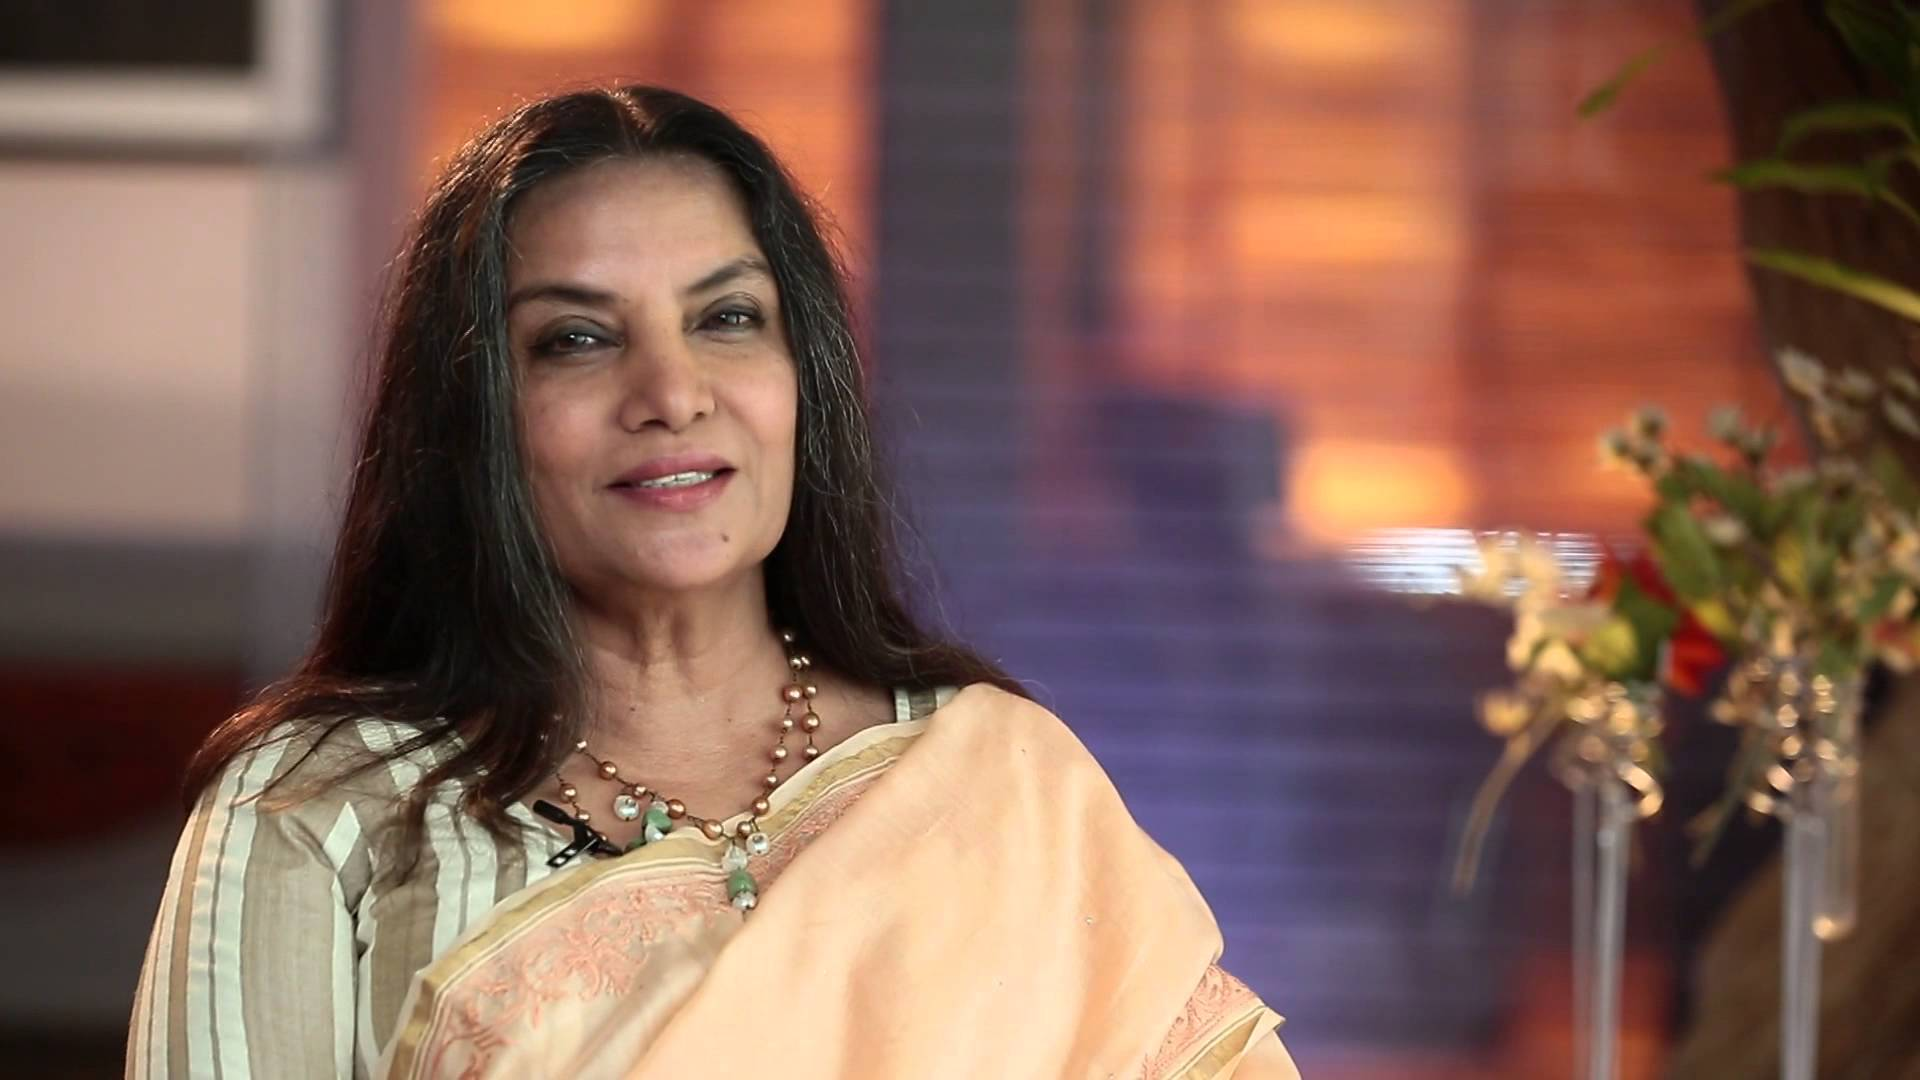 Veteran Indian actress Shabana Azmi